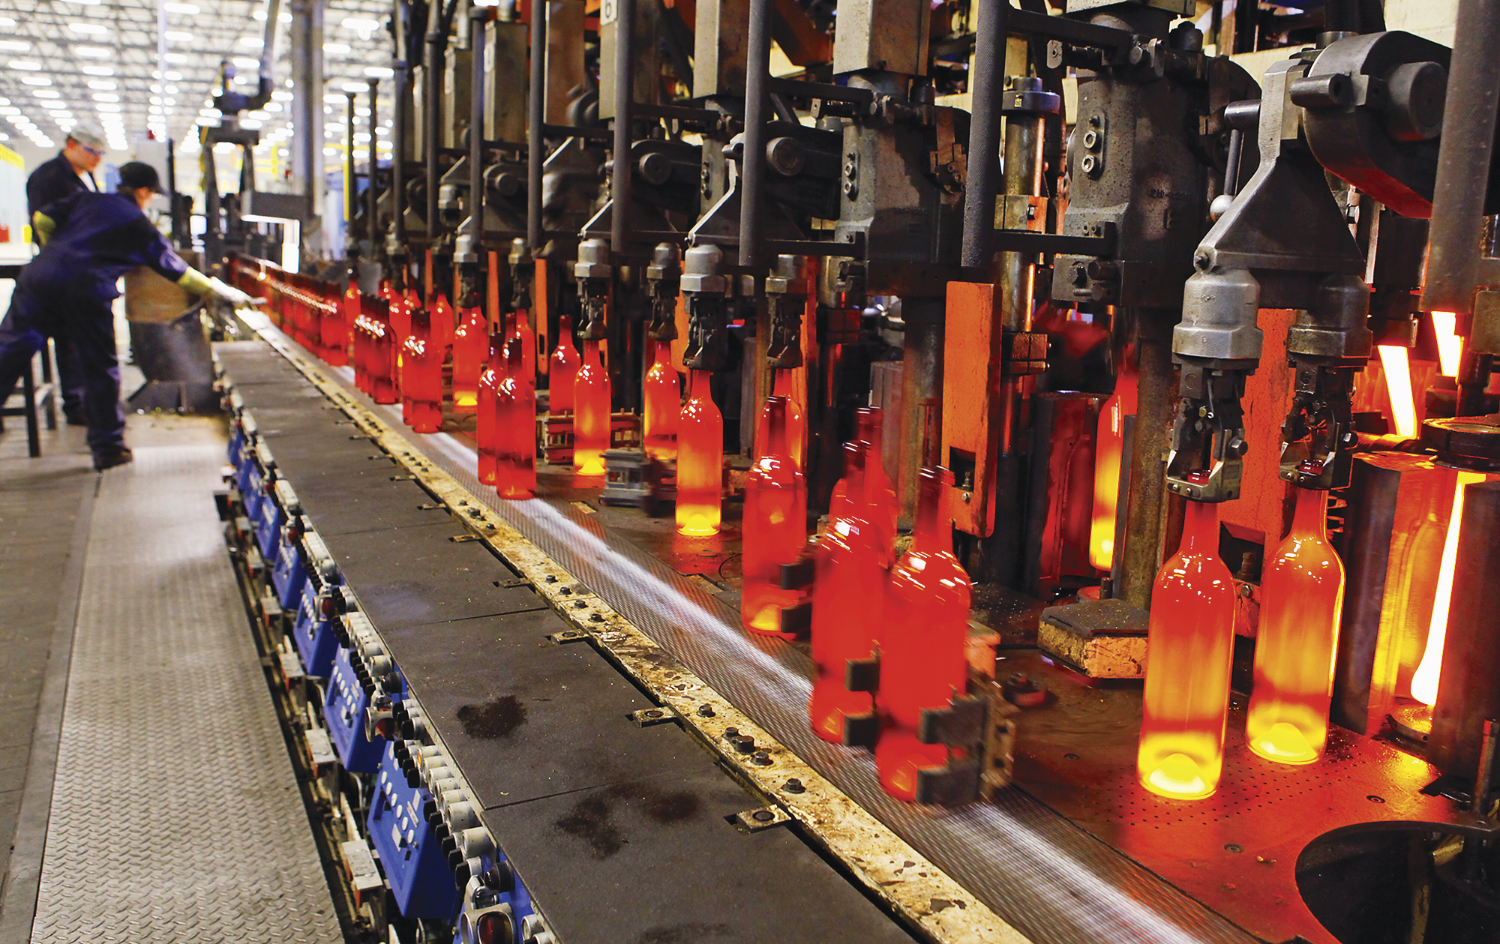 Glowing red-hot wine bottles are coming off the line at the Bennu Glass plant in Kalama, WA. on August 3, 2012. (AP Photo, The Daily News, Bill Wagner )